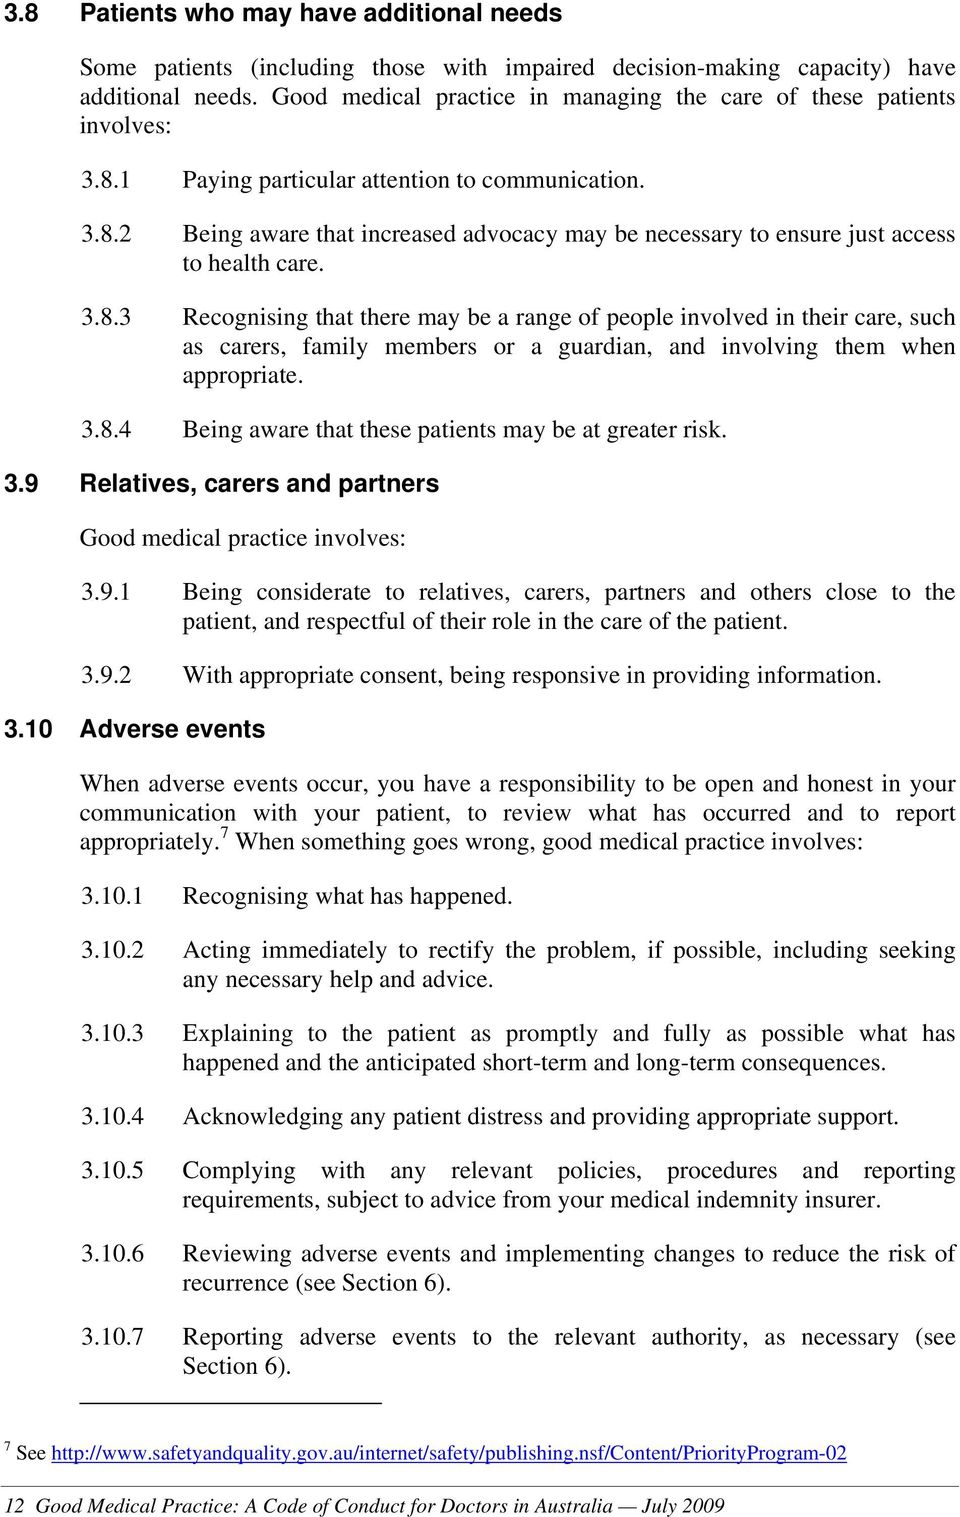 3.8.3 Recognising that there may be a range of people involved in their care, such as carers, family members or a guardian, and involving them when appropriate. 3.8.4 Being aware that these patients may be at greater risk.